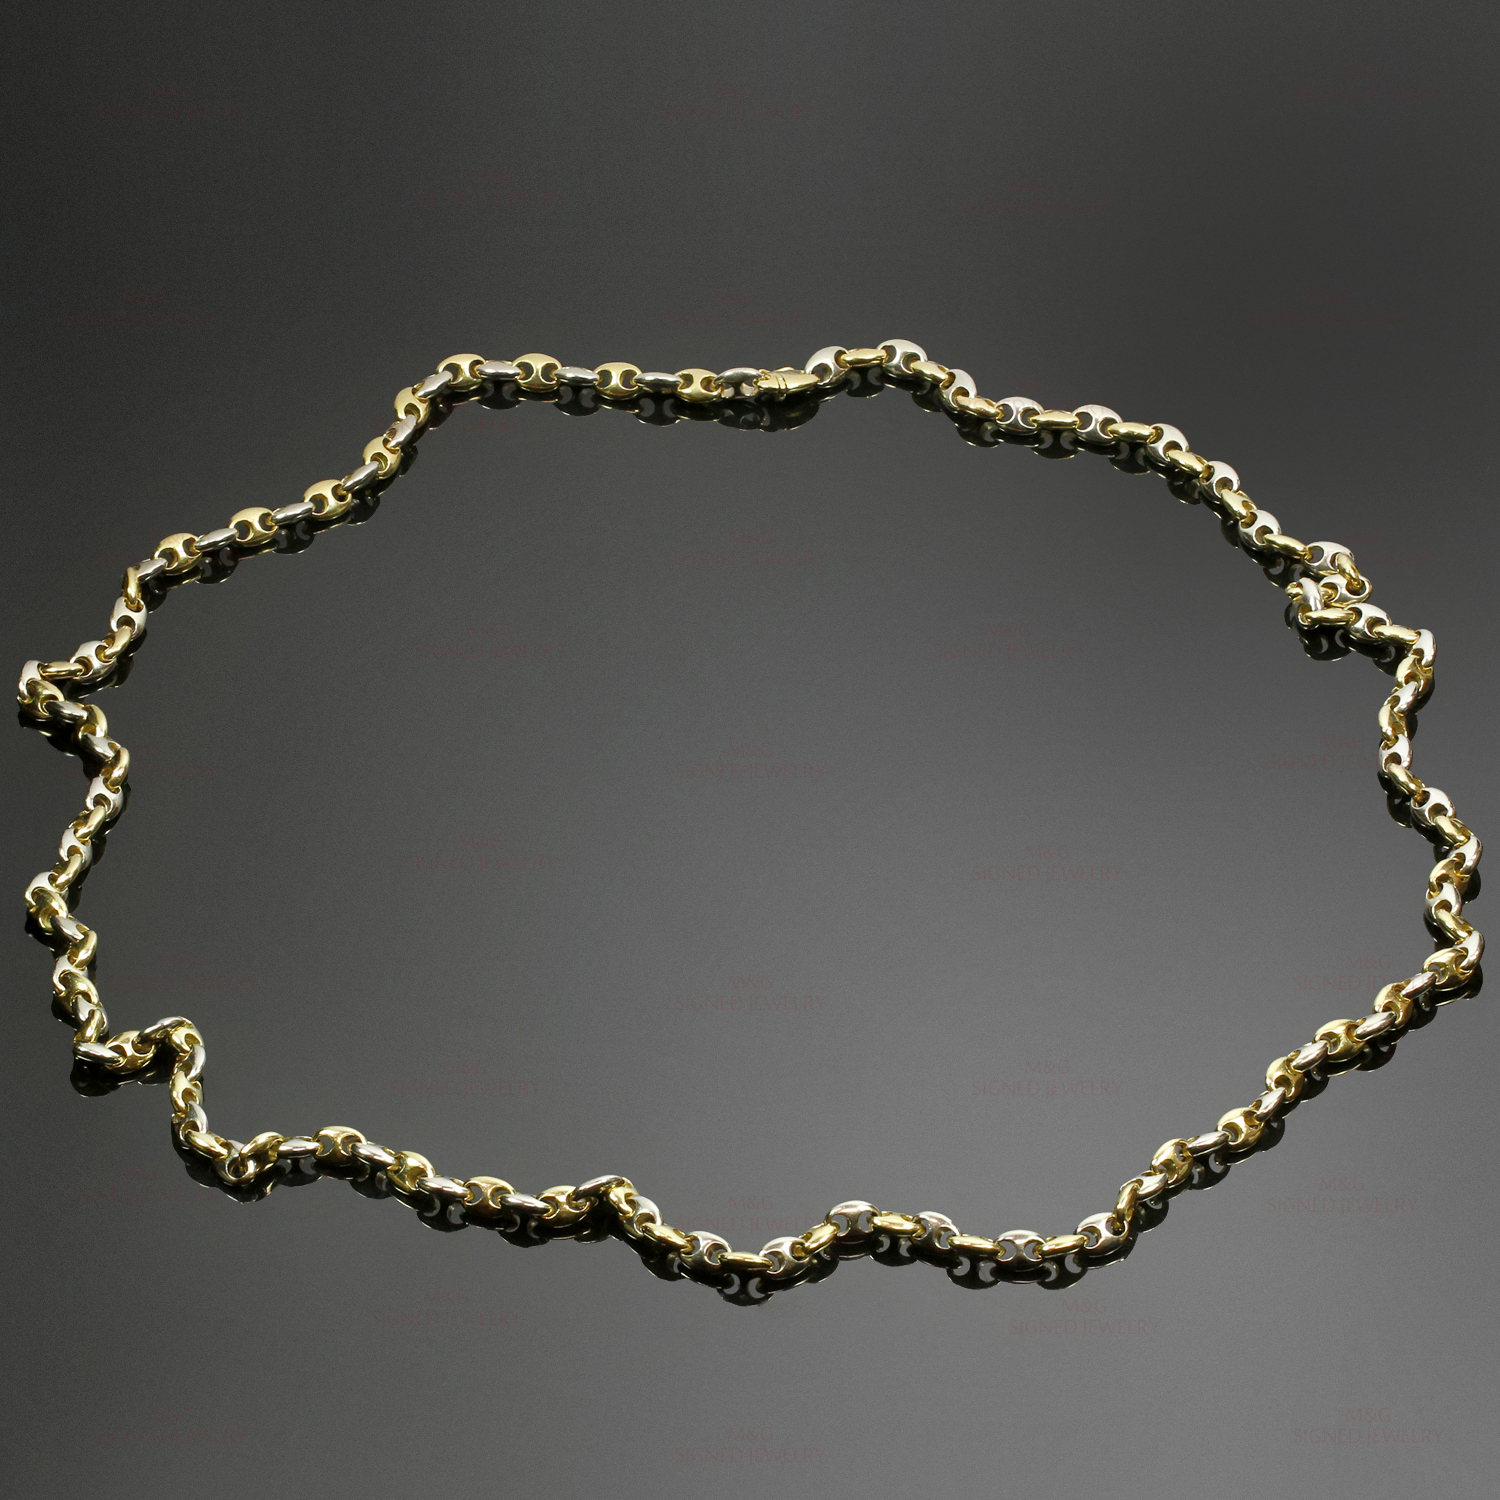 CARTIER 18k Two-Tone Gold Mariner Link Long Chain Unisex Necklace